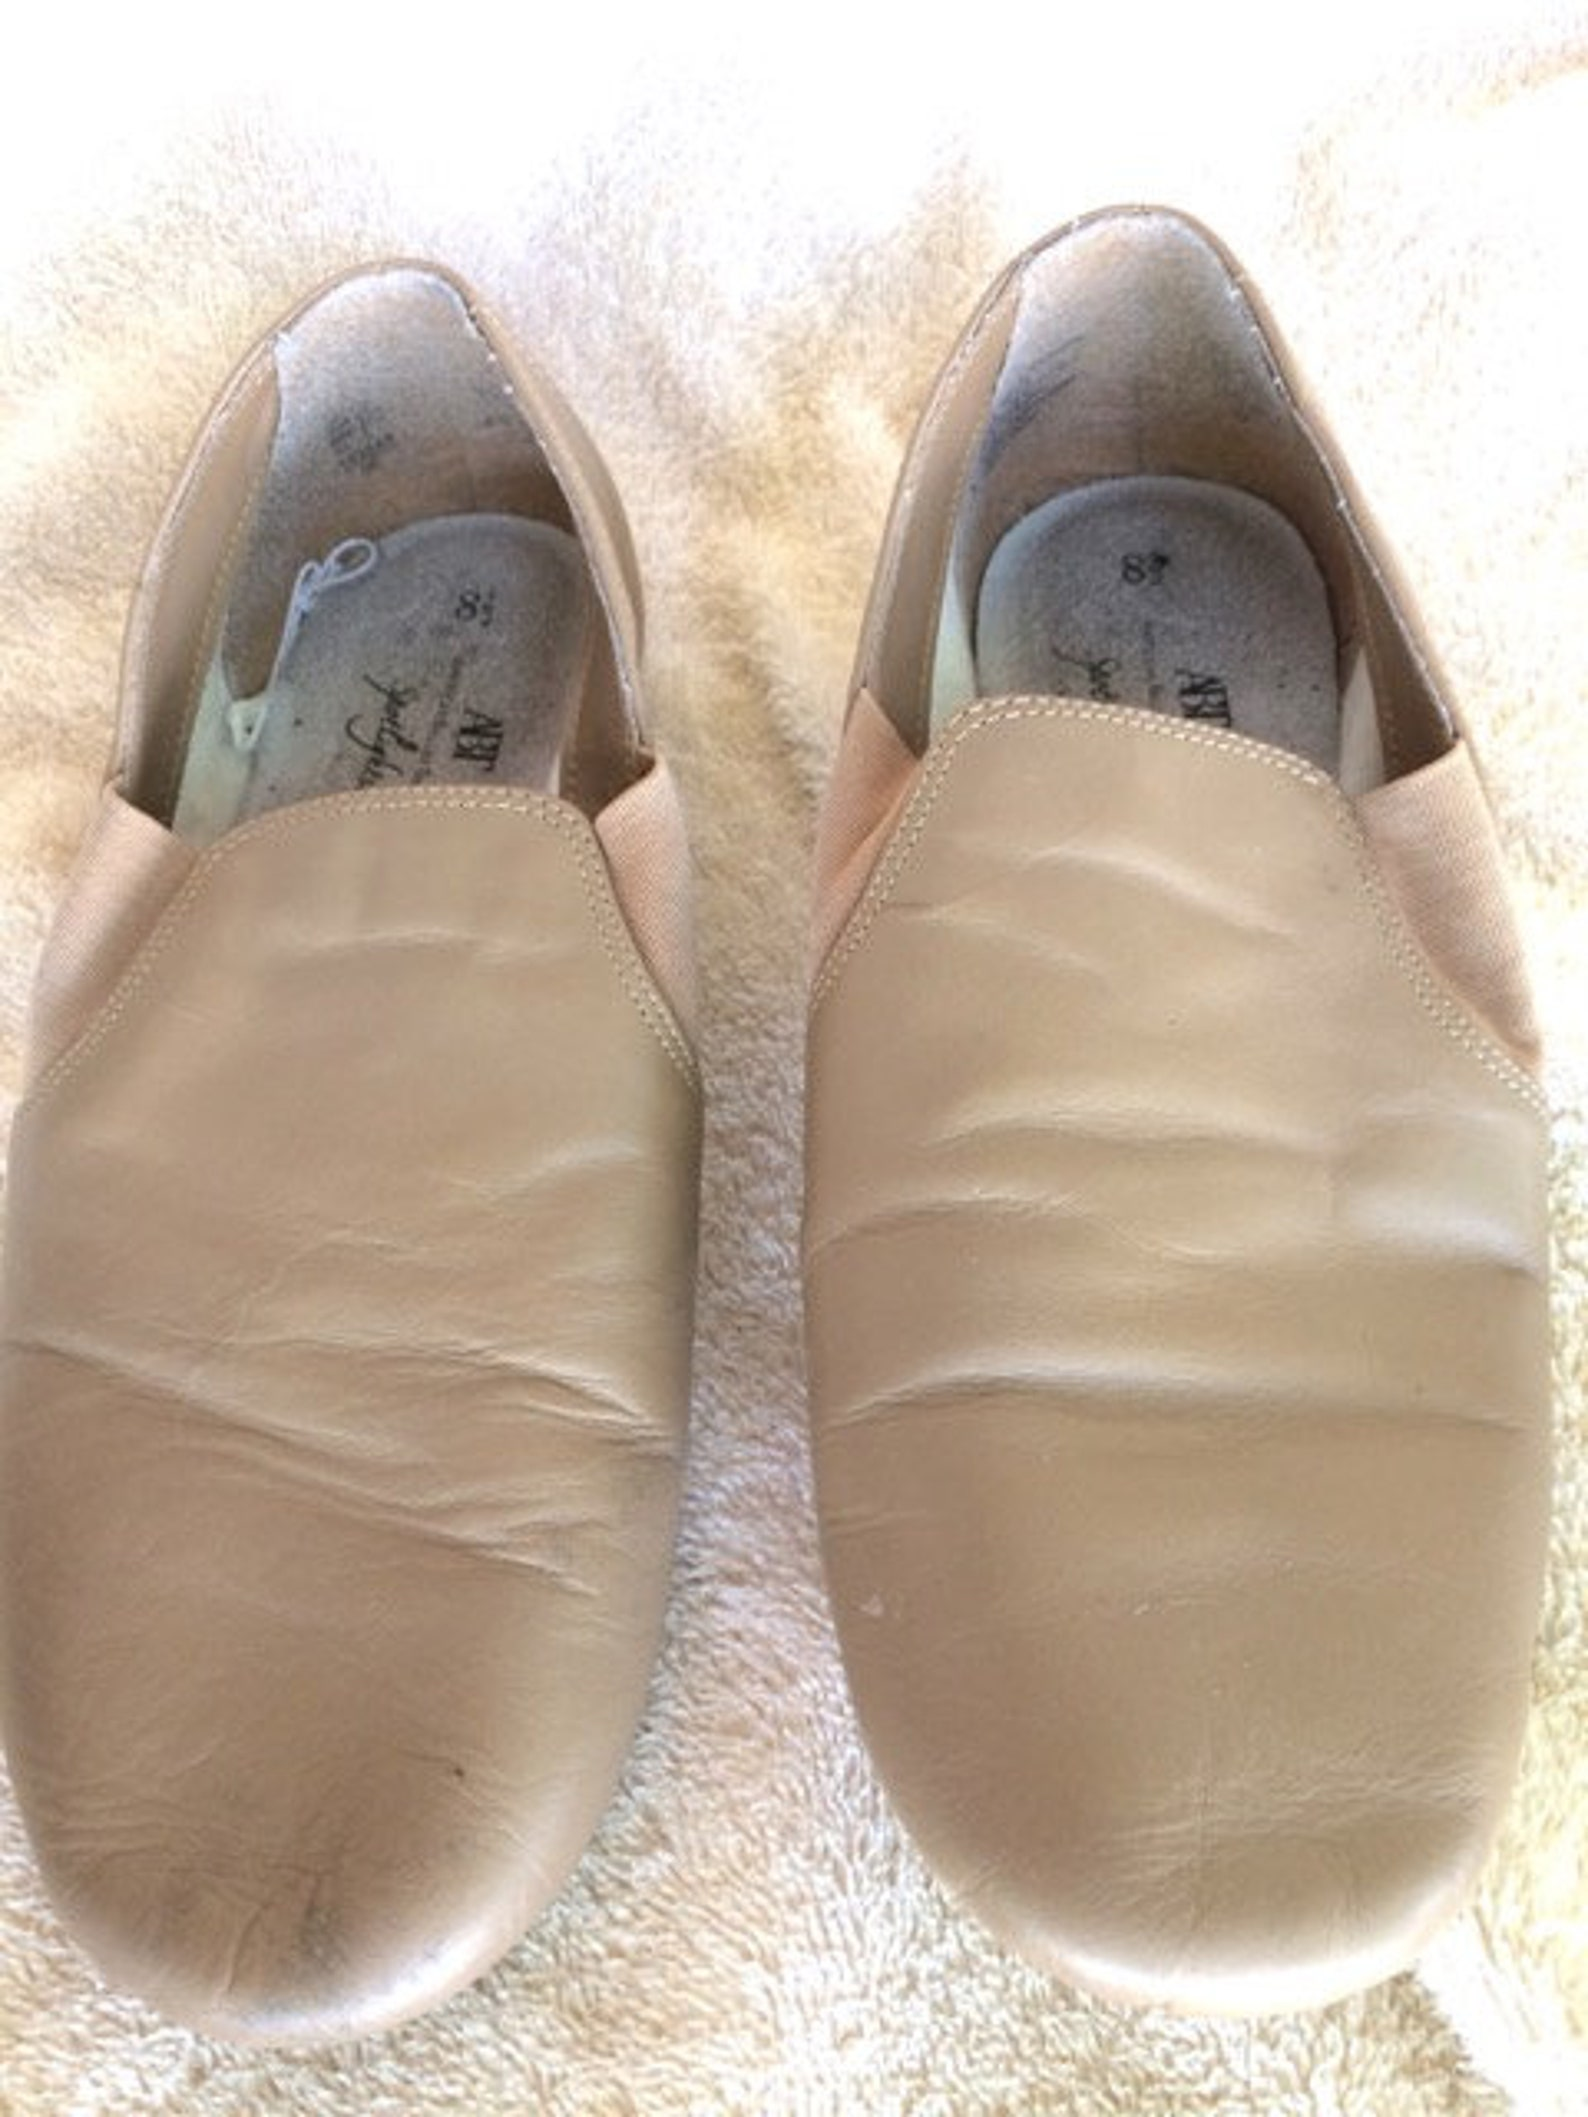 american ballet jazz shoes size 8.5 clean and ready to rehearse in. vintage classic ballet shoes for jazz dancing